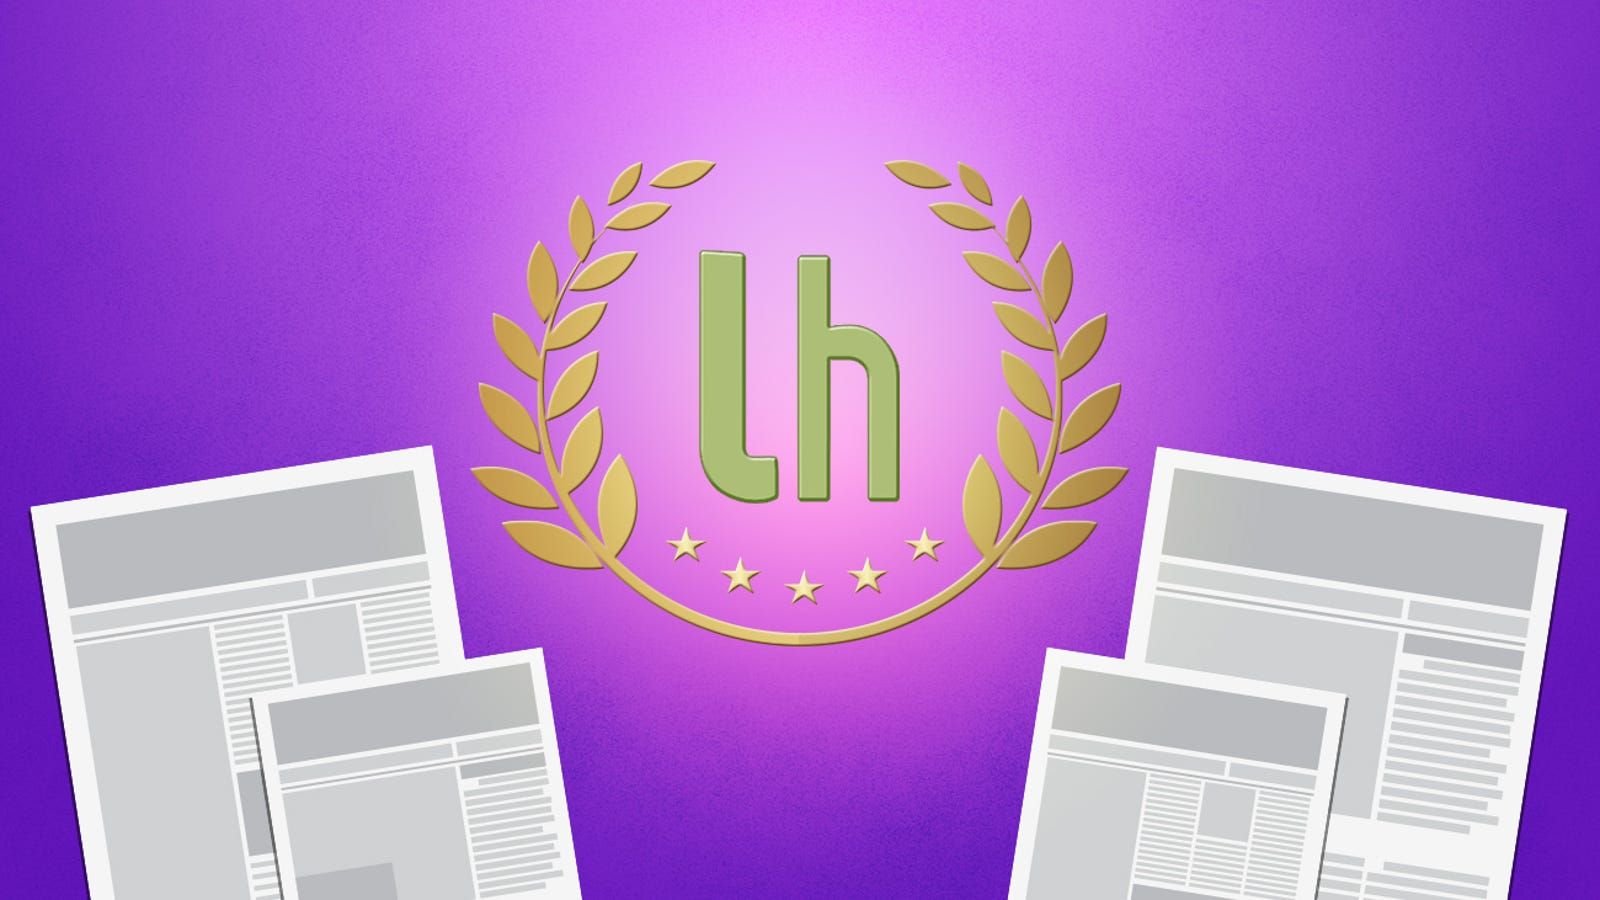 Top 10 Lifehacker Posts of All Time